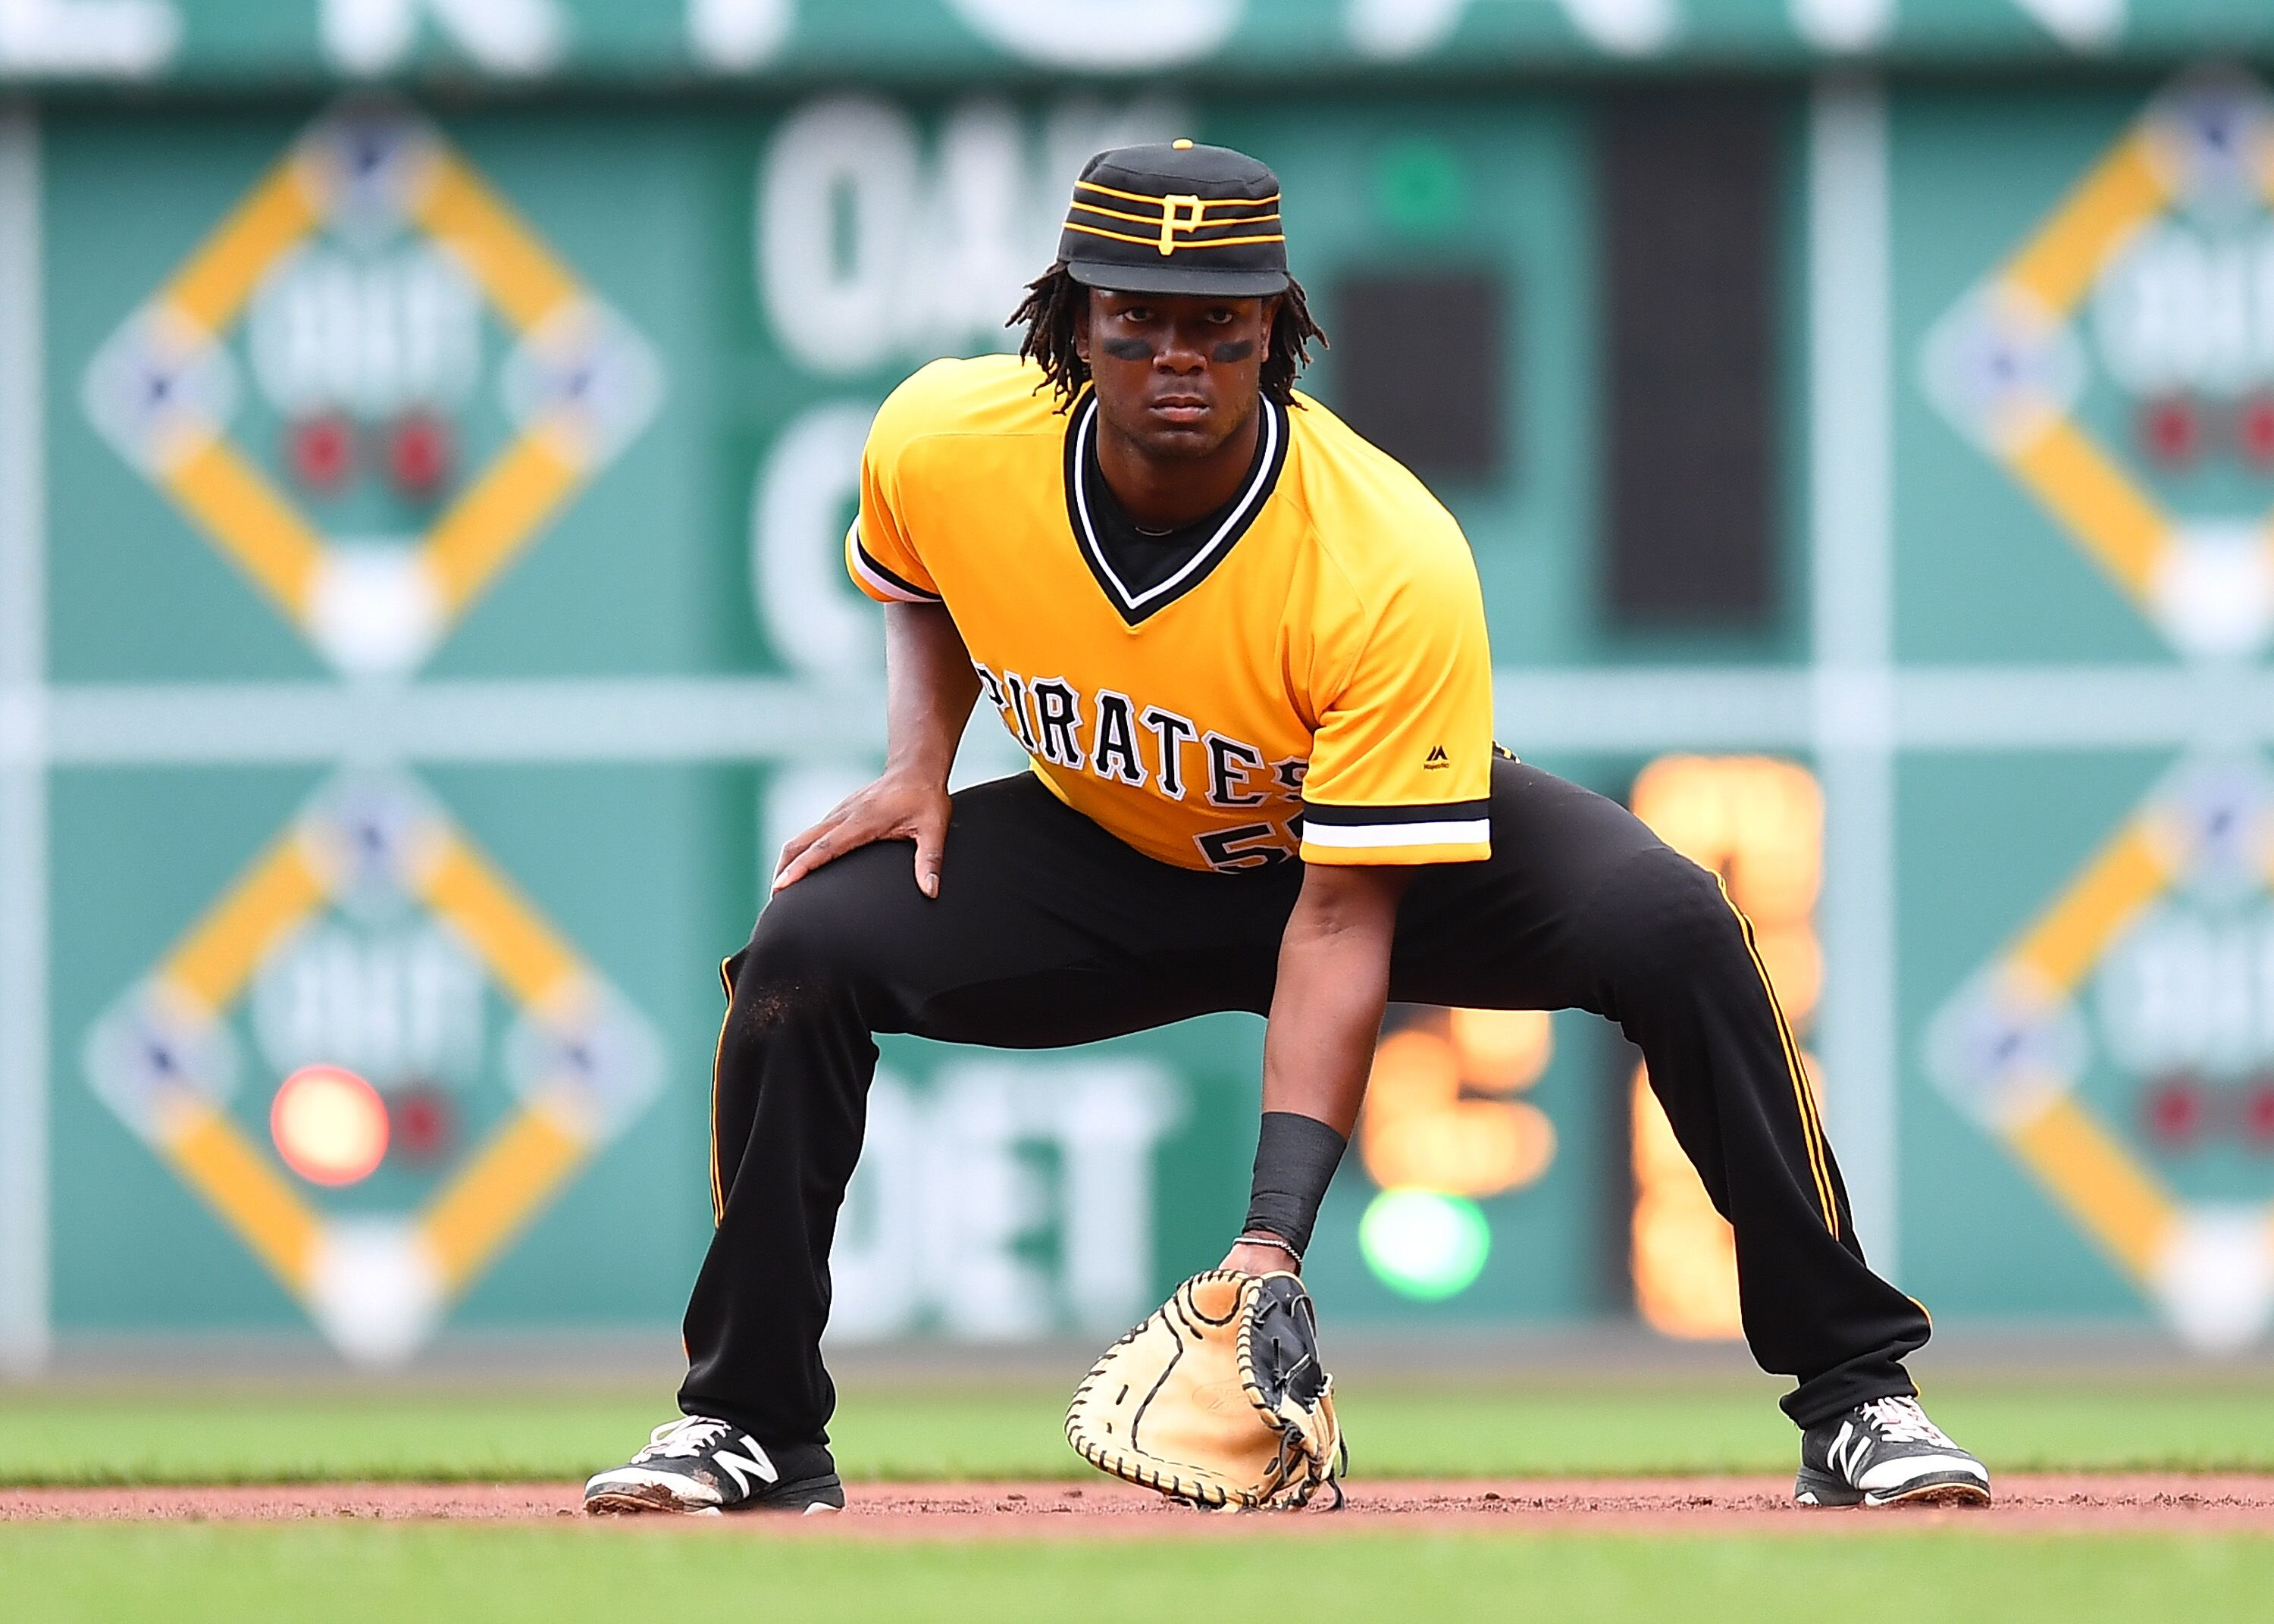 Pittsburgh Pirates: Is Josh Bell Bucs' Most Underrated Player?